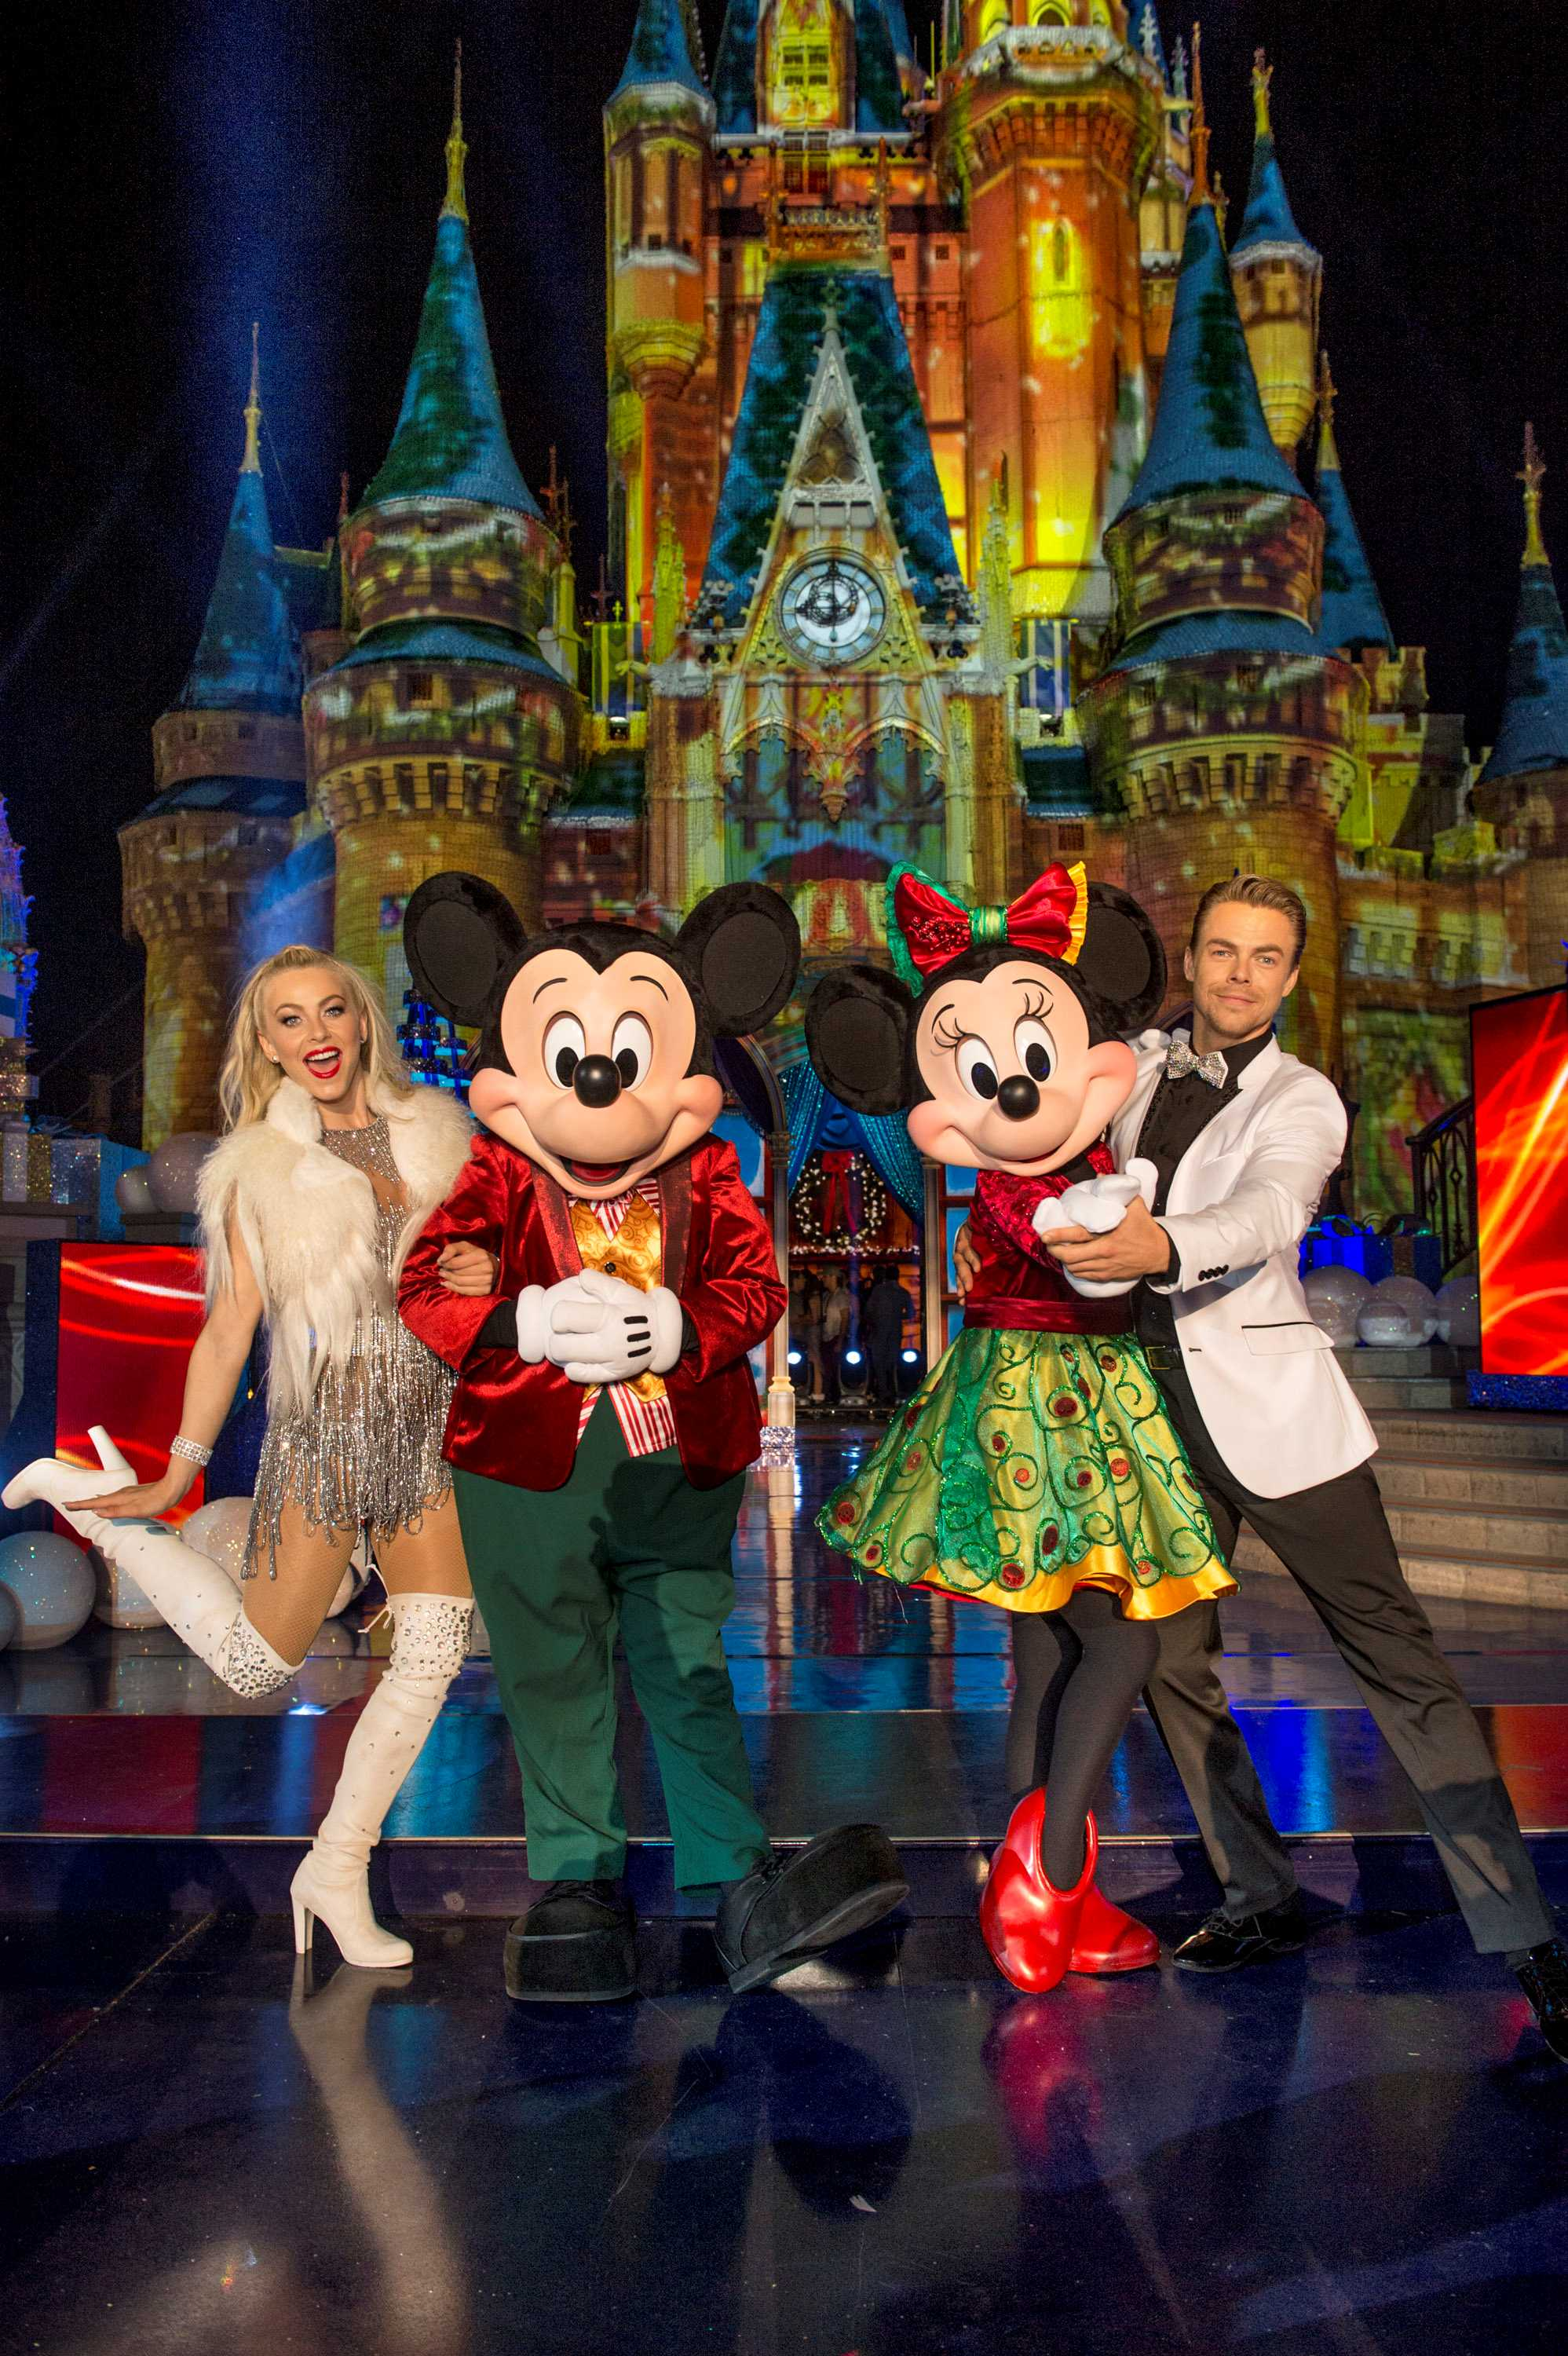 Julianne Hough and pro-dancer Derek Hough pose with Mickey Mouse and Minnie Mouse